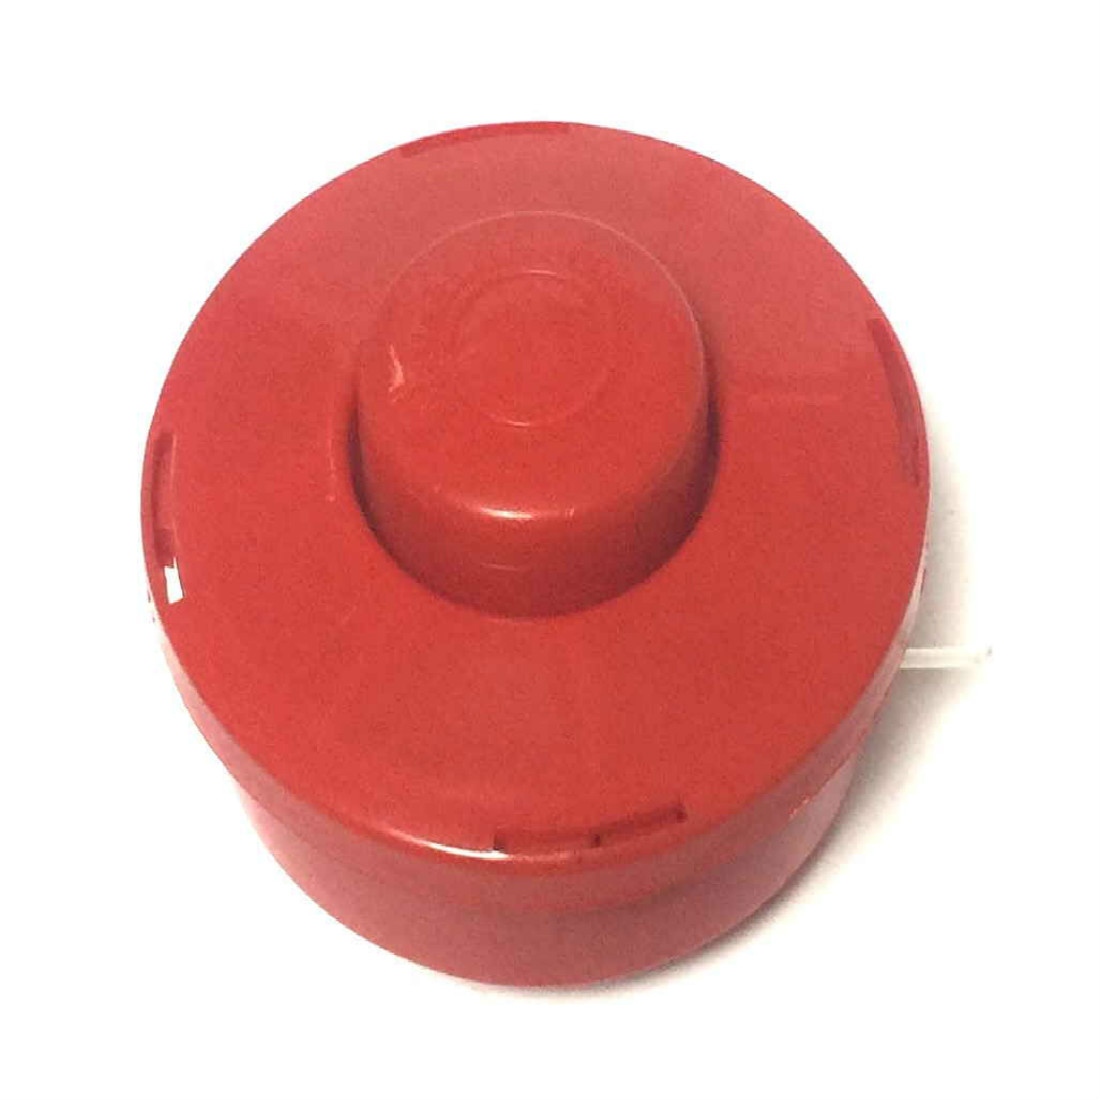 Reel 1201 Fishing Line Trimmer Red M10h1.25